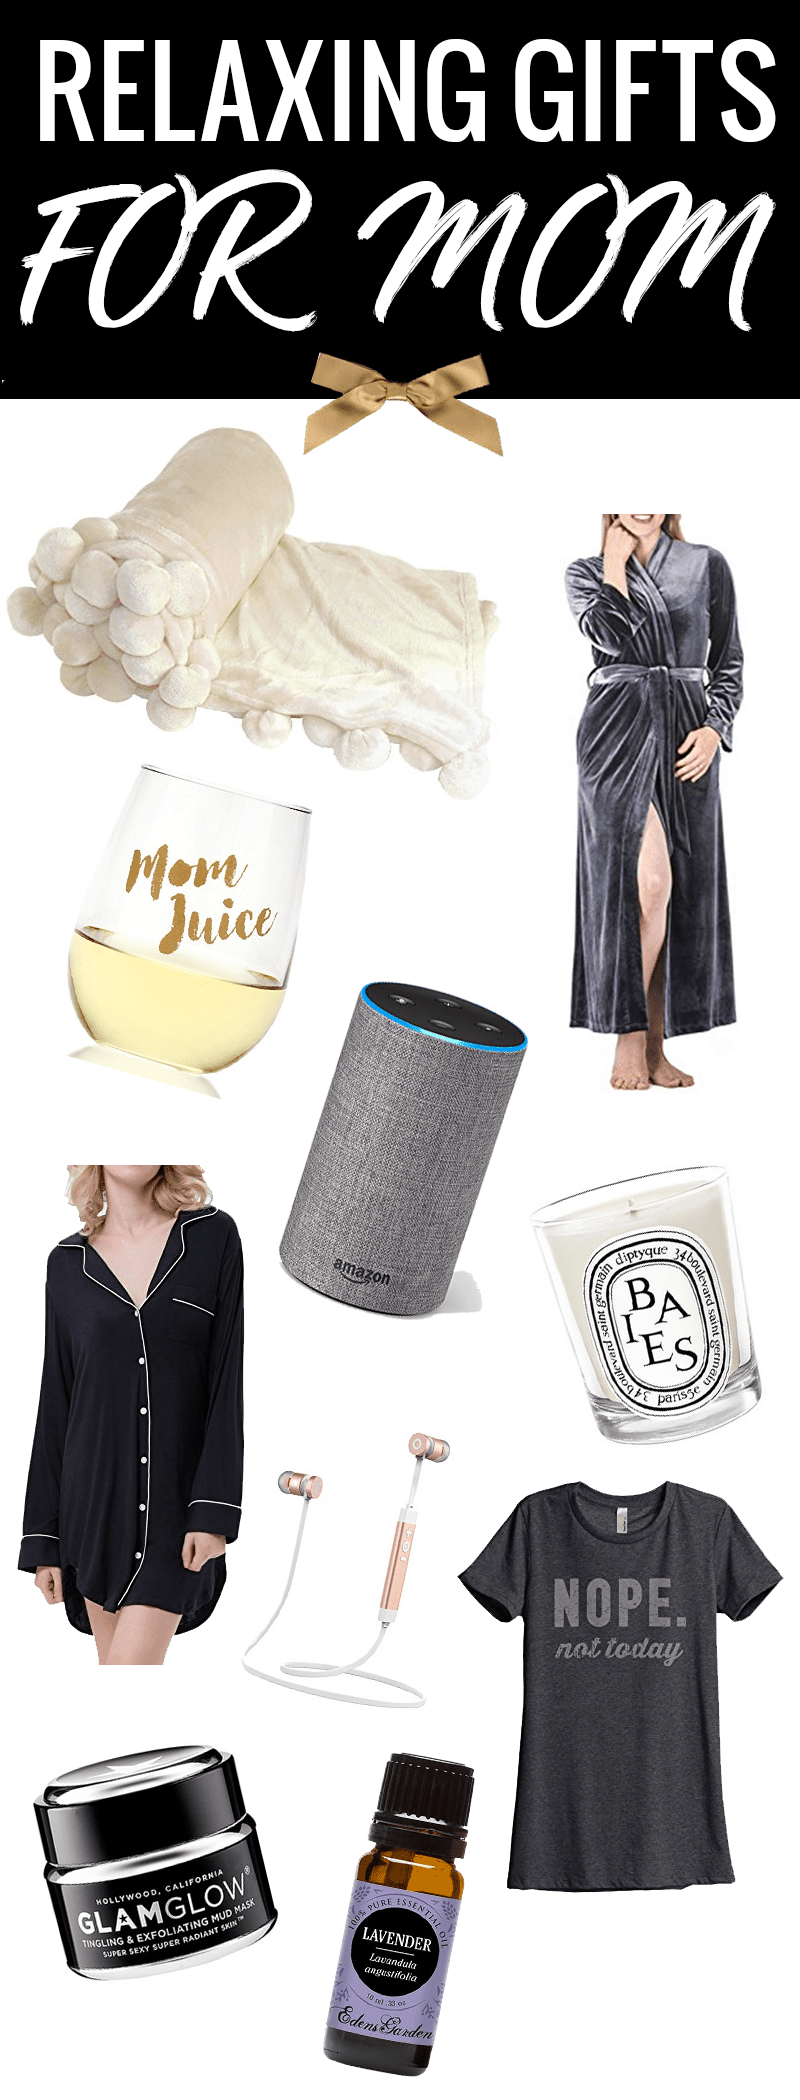 Relaxing Gifts for Mom - she will love everything in this gift guide! #gifts #giftideas #giftguide #giftsformom #holidaygifts #christmasgifts